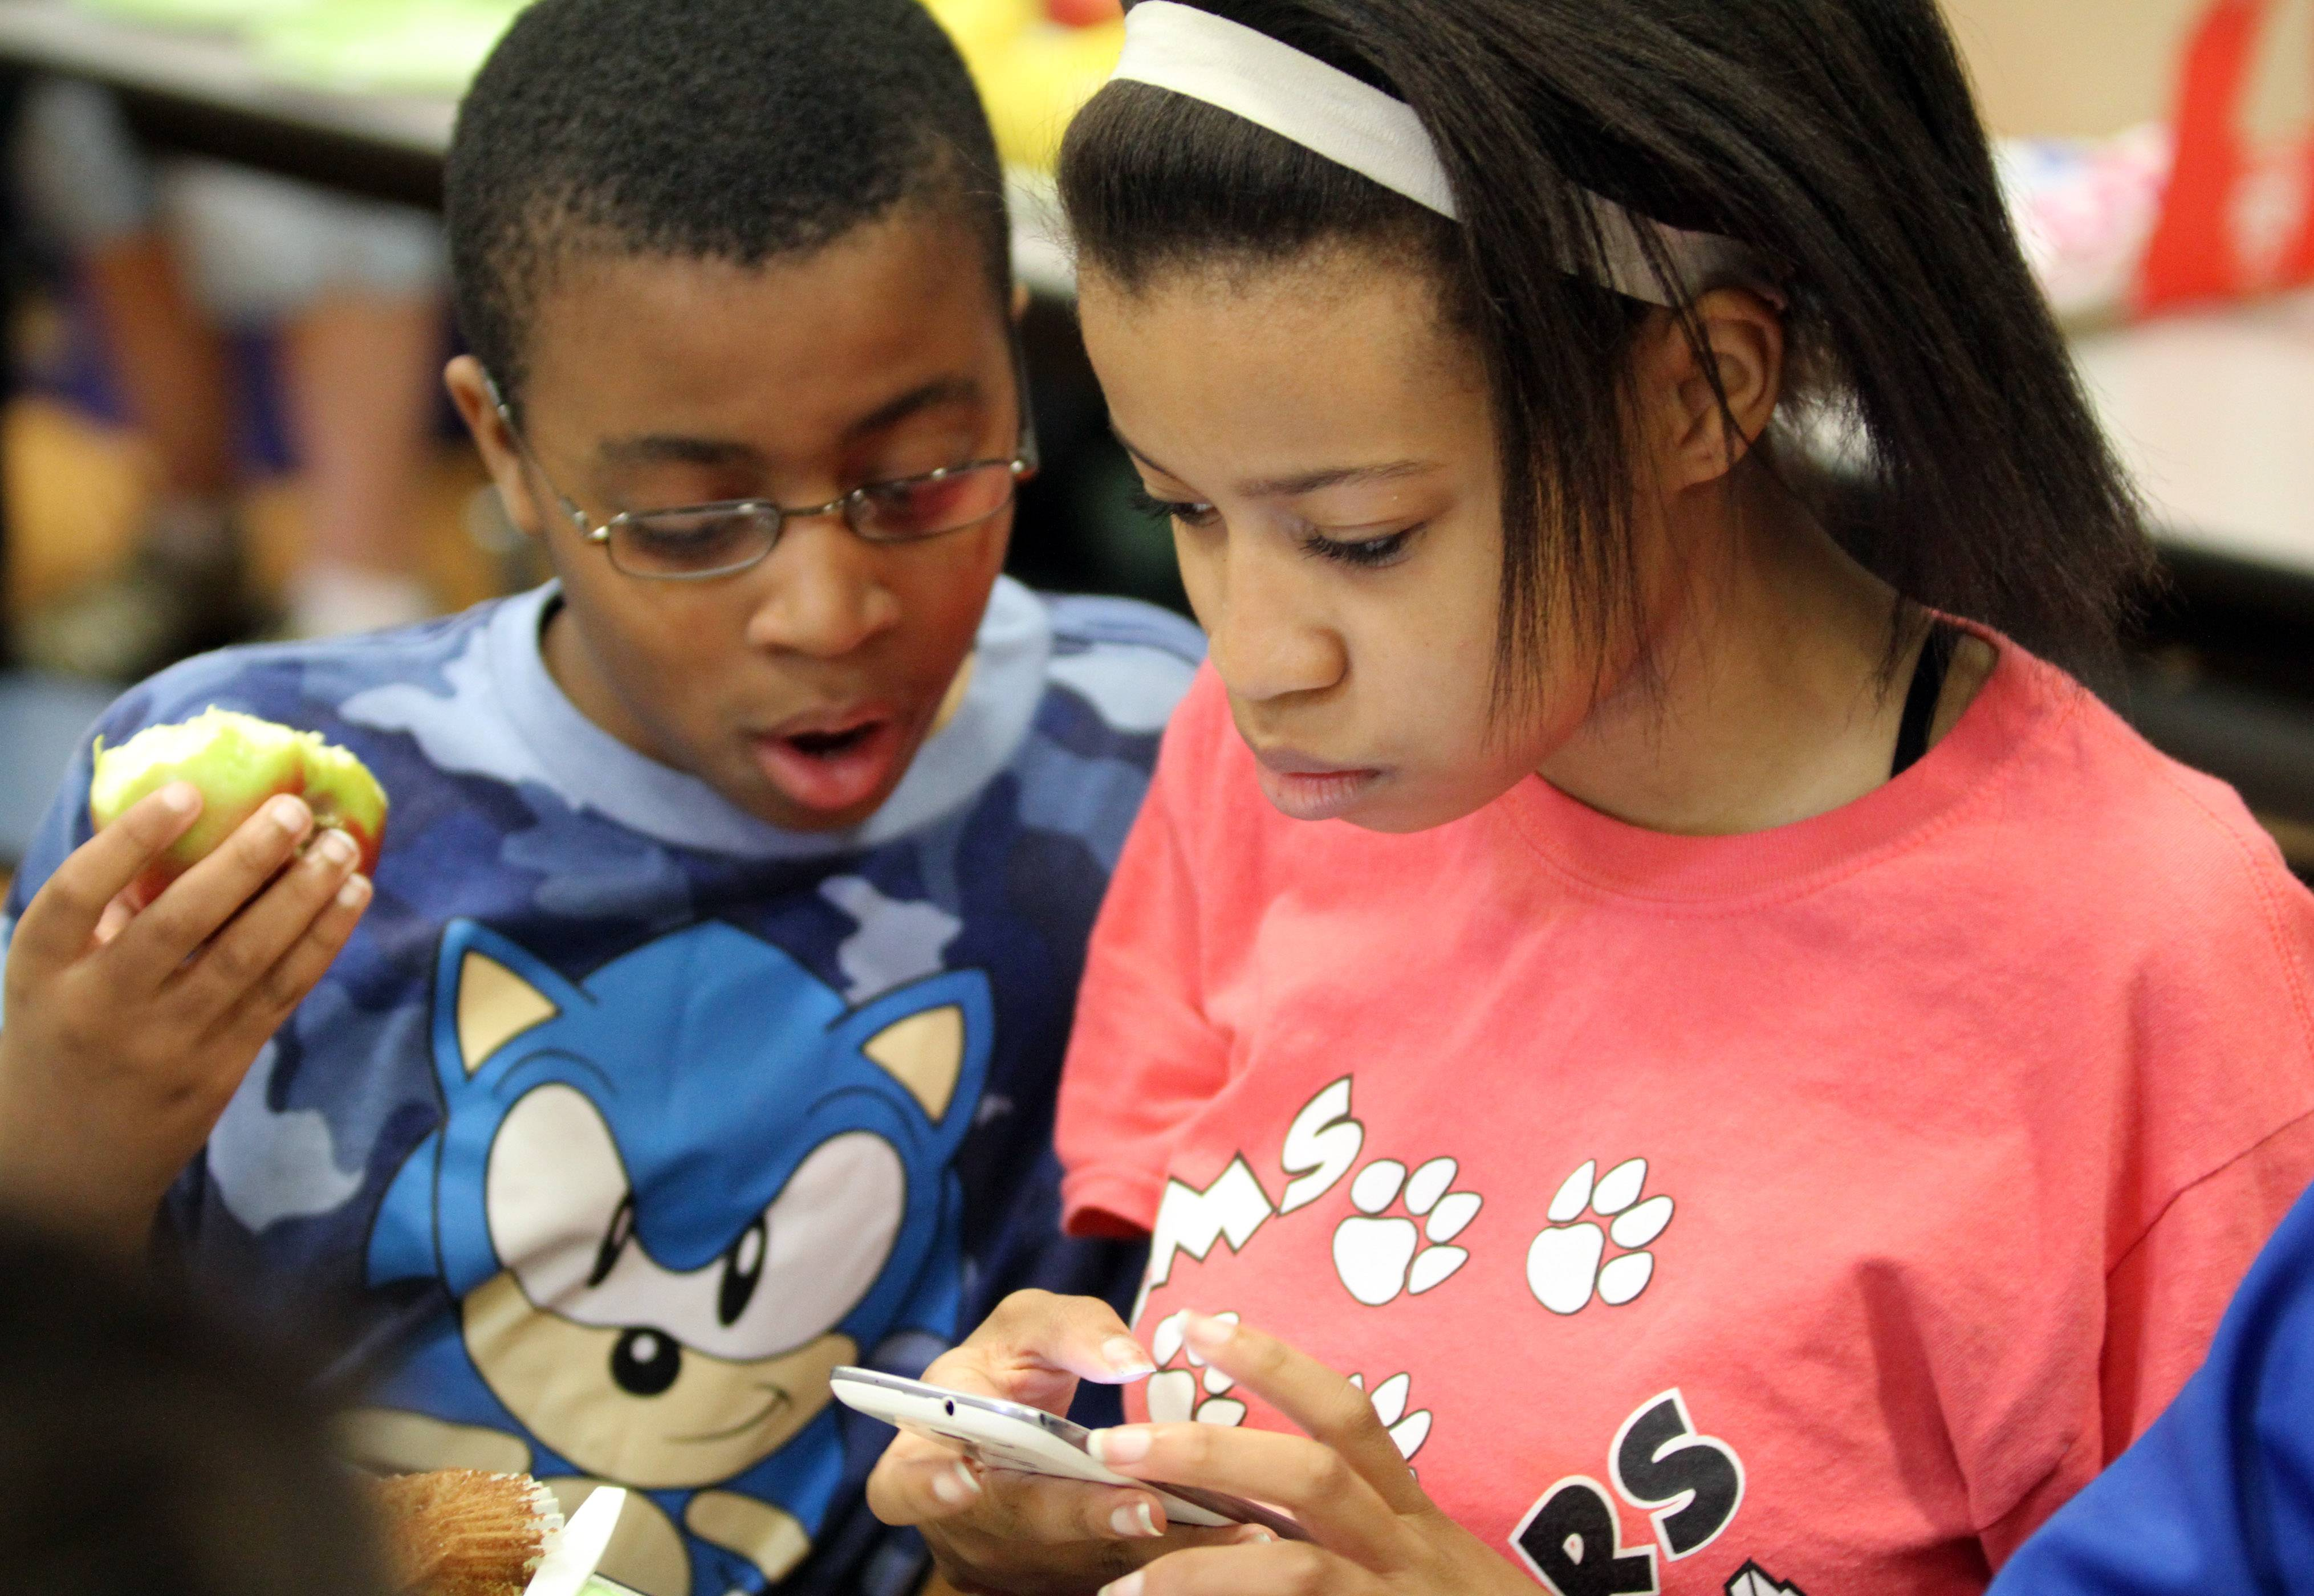 Jordin Williams, eighth grader, shows her younger brother, Kenneth, a photo she took of him while they eat breakfast during the Second Saturday program at the school.